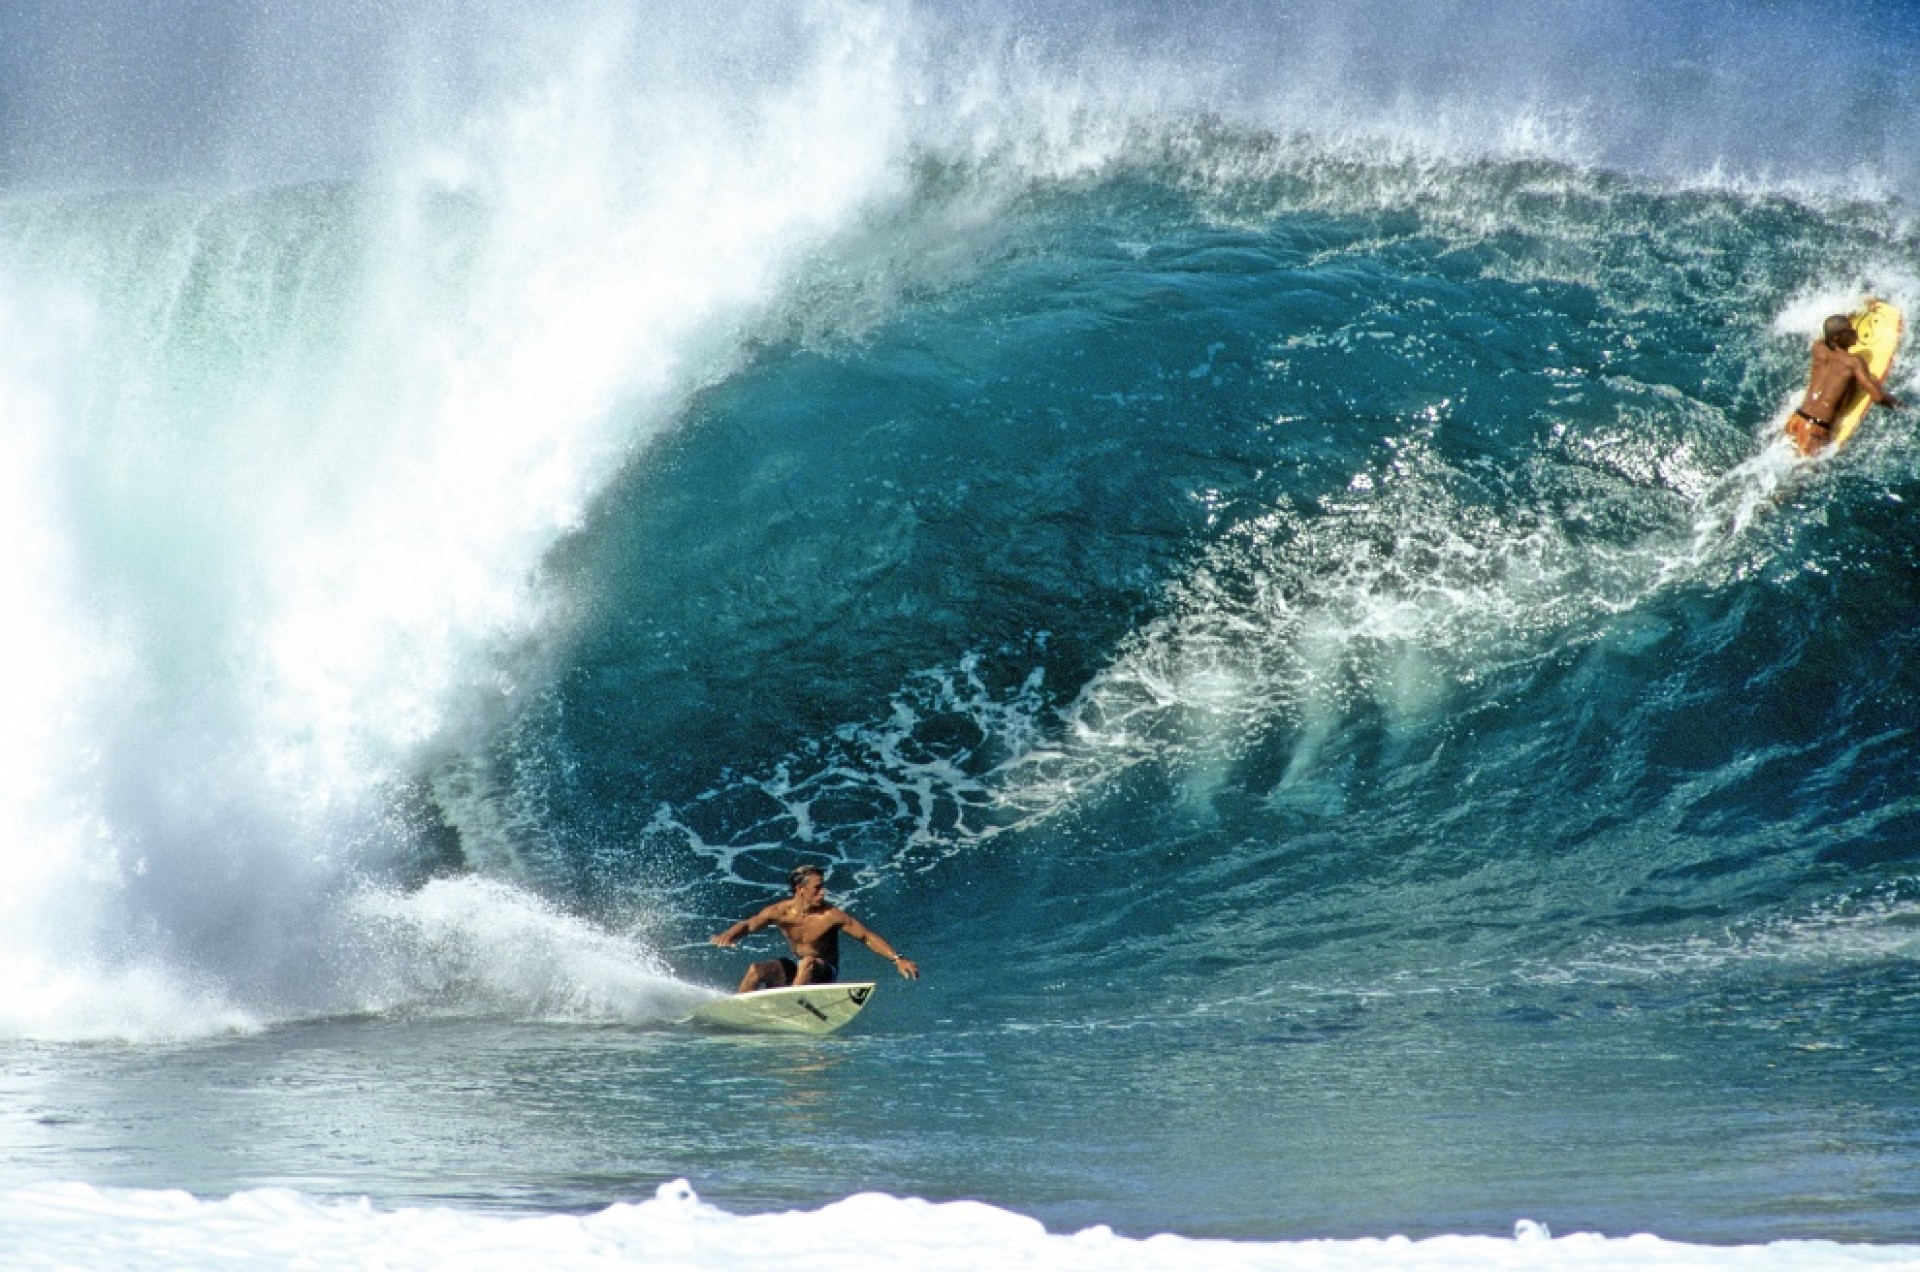 Kelly Slater's photo of Pipeline & Backdoor